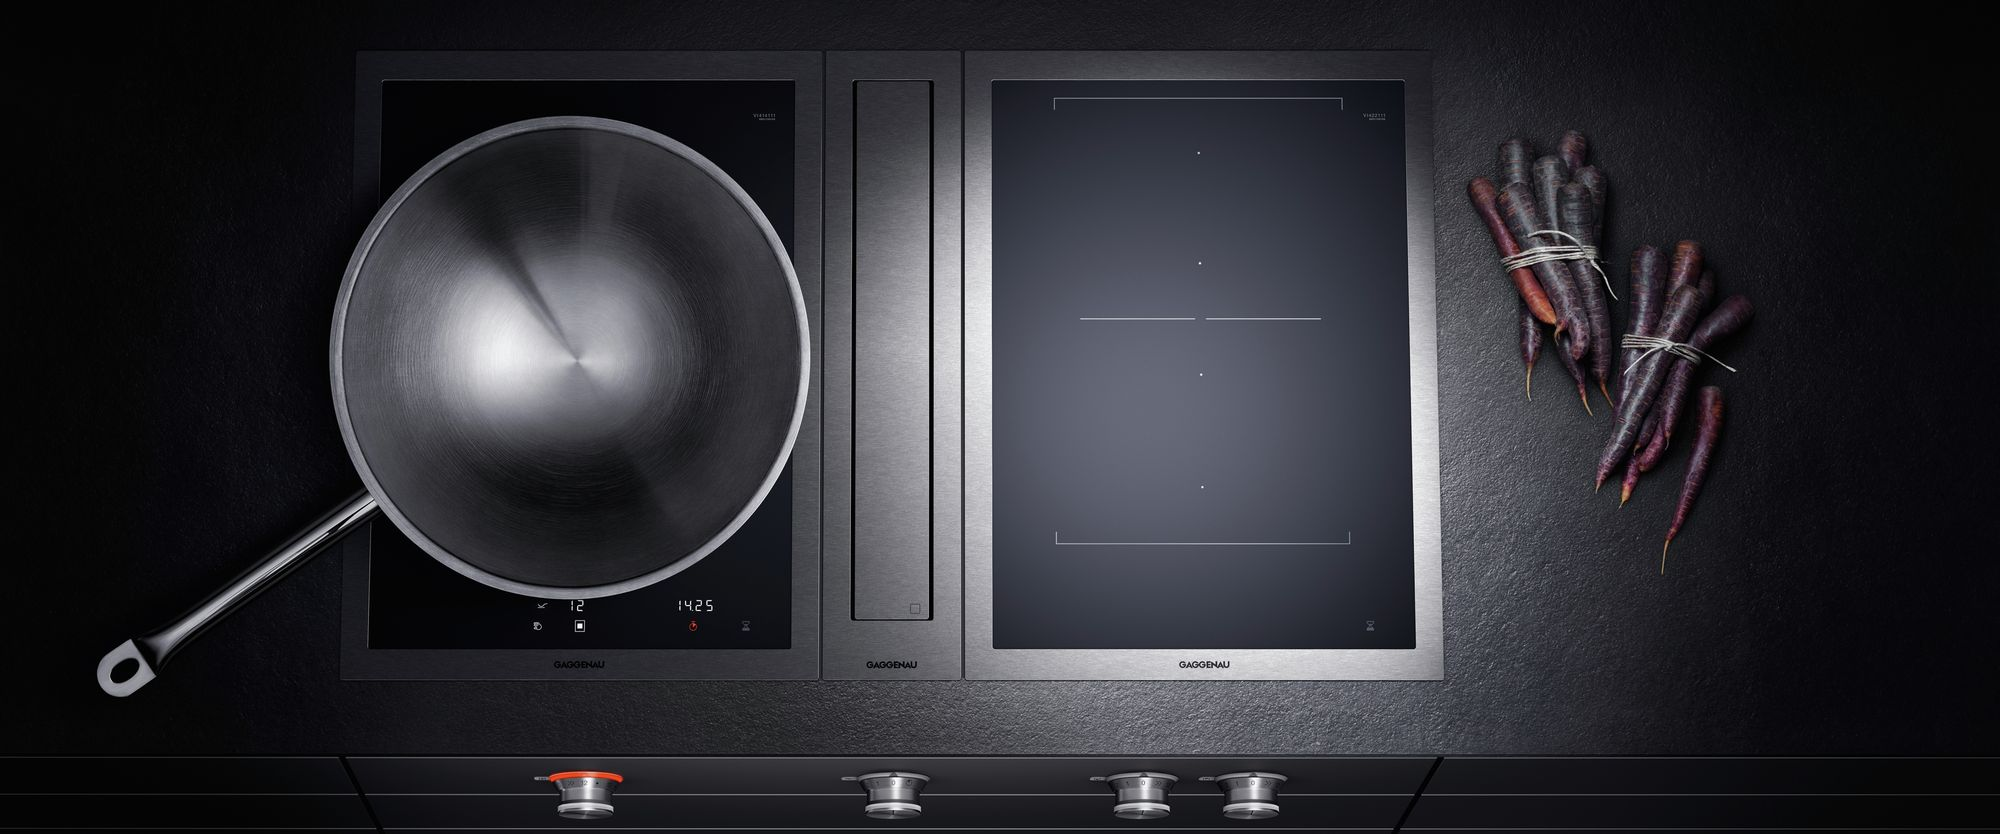 MCIM02584099_stage-1_vario_cooktops_400_series